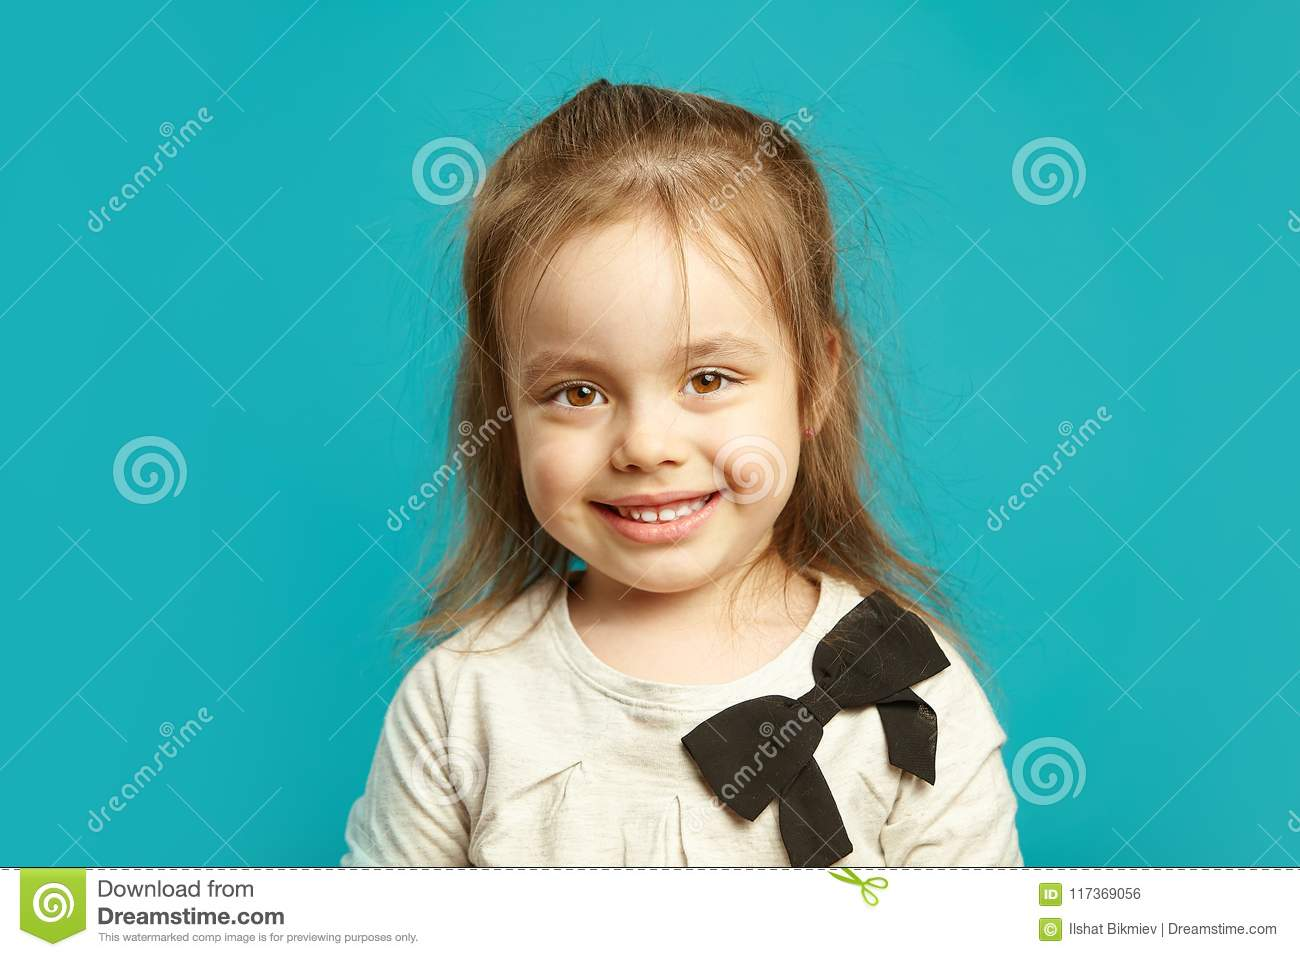 4eda3b6f9 Cute Baby With A Charming Smile. Stock Photo - Image of closeup ...